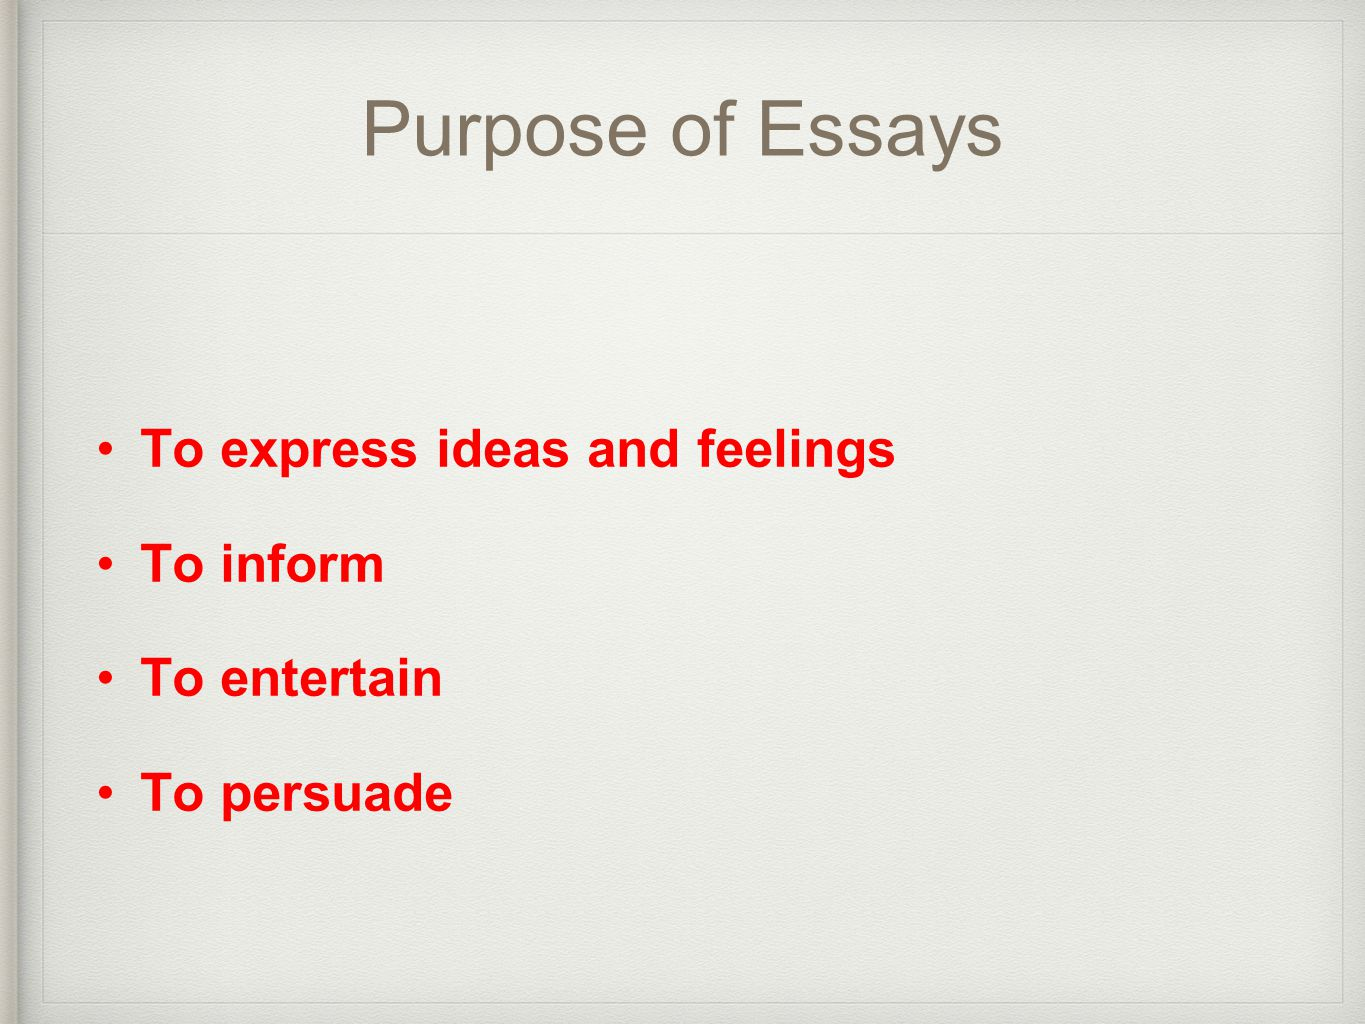 purpose of essay on man Essays and criticism on alexander pope's an essay on man - critical essays.